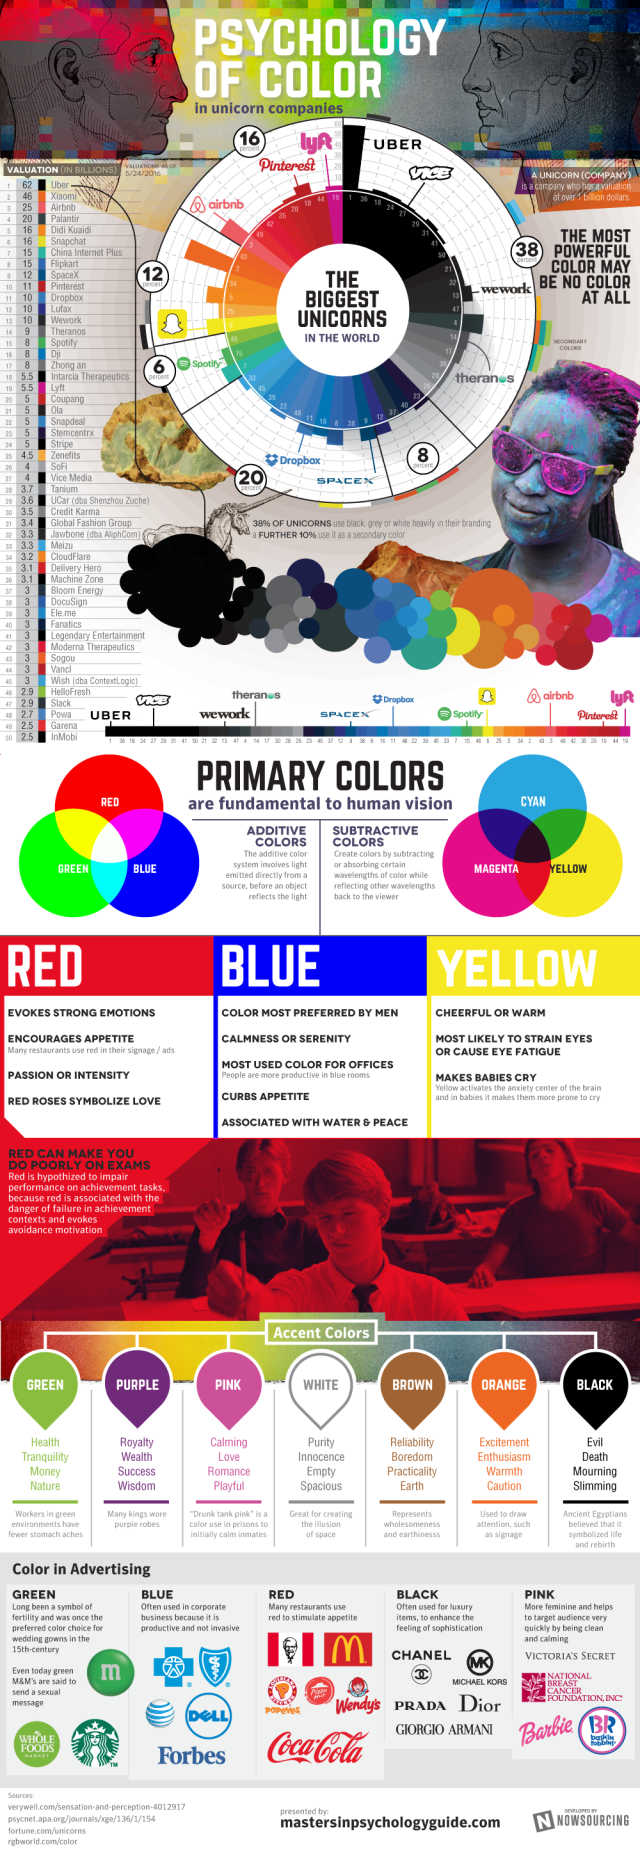 unicorn-companies-how-they-choose-their-colors_575b0a75275f7